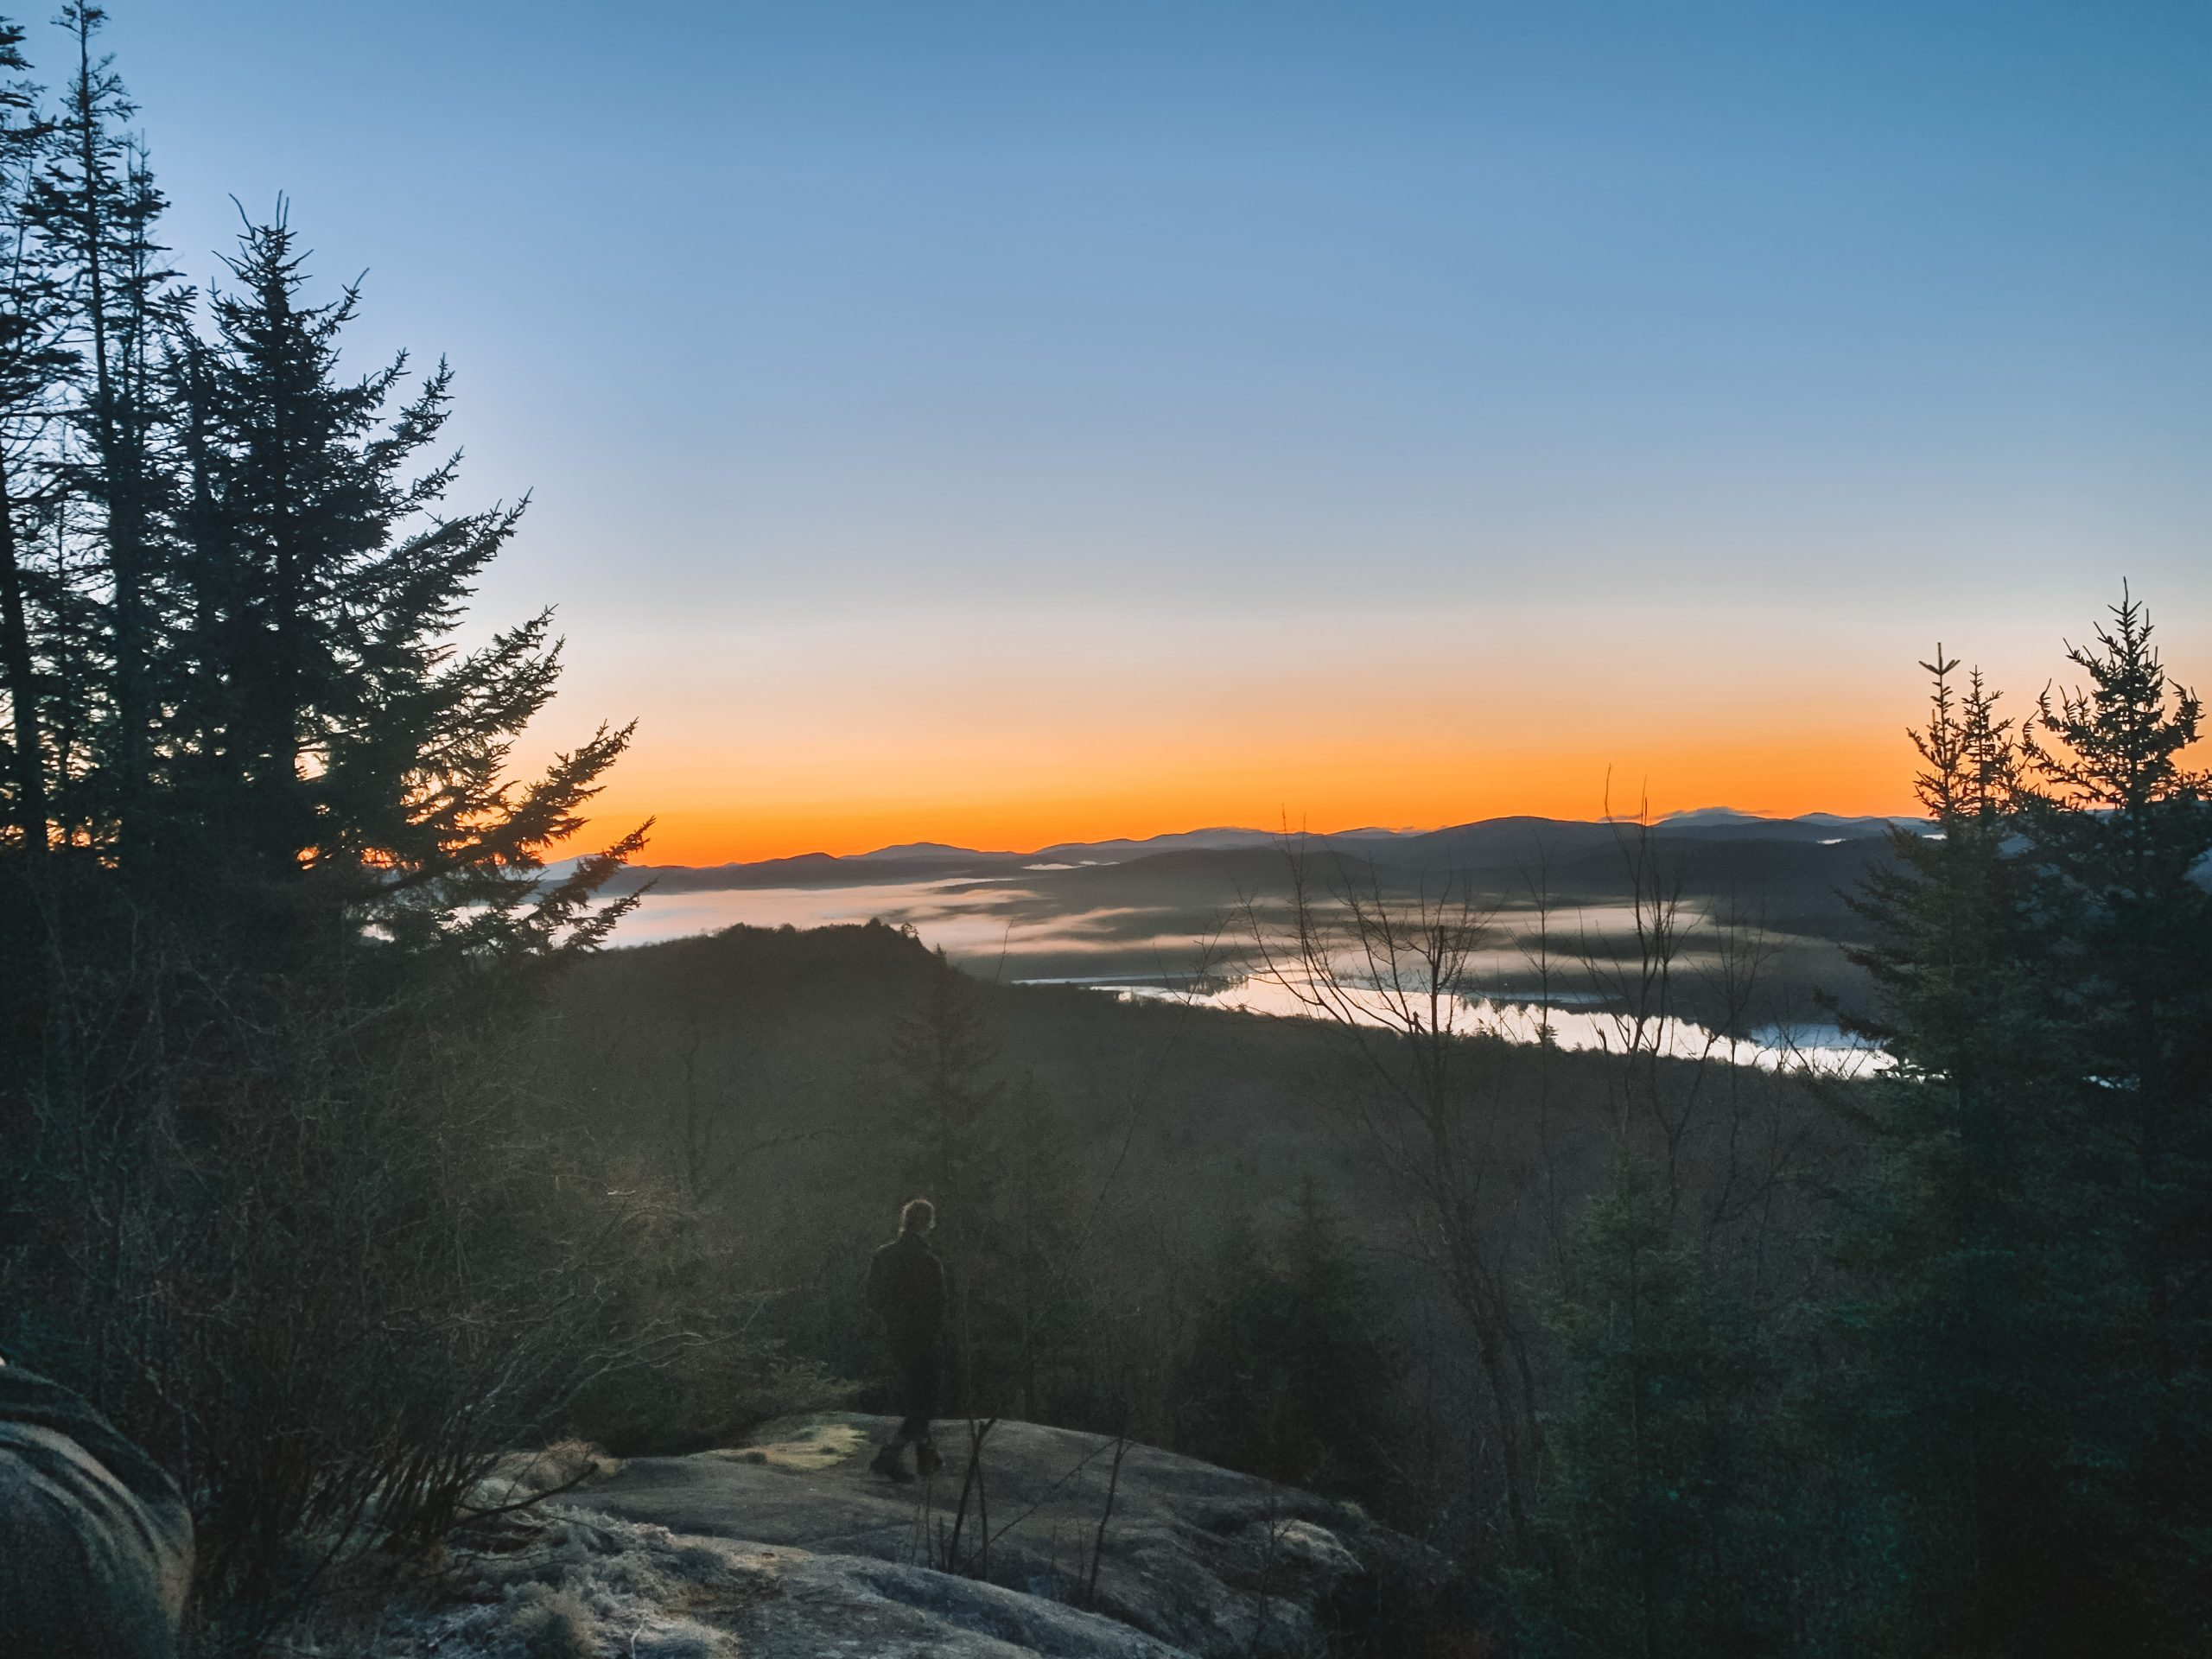 sunrise hike to bald mt near old forge new york - hikes in upstate new york